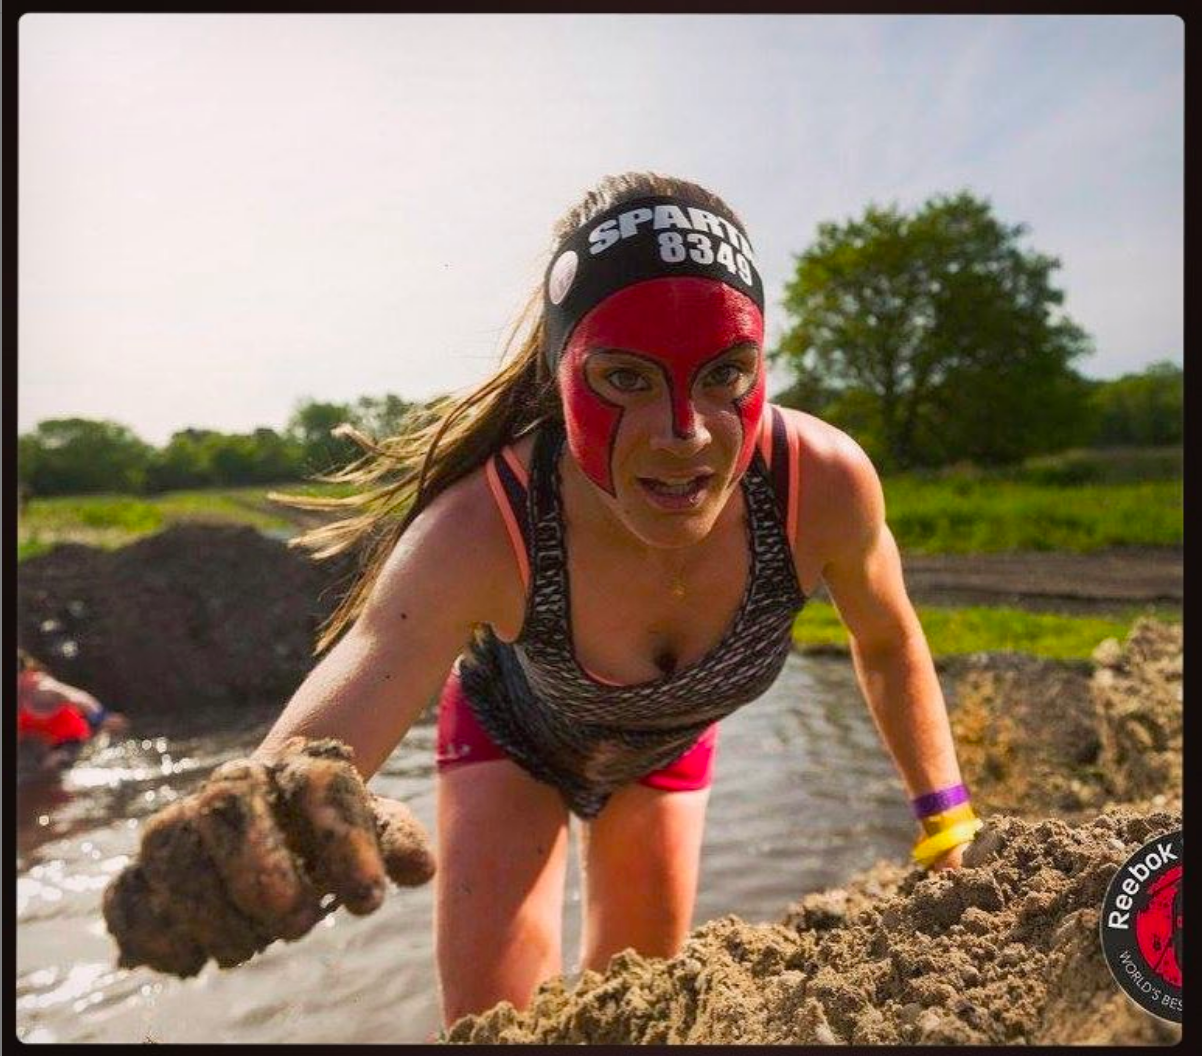 Katie Purcell aka Pretty Fierce Spartan at Spartan Race obstacle